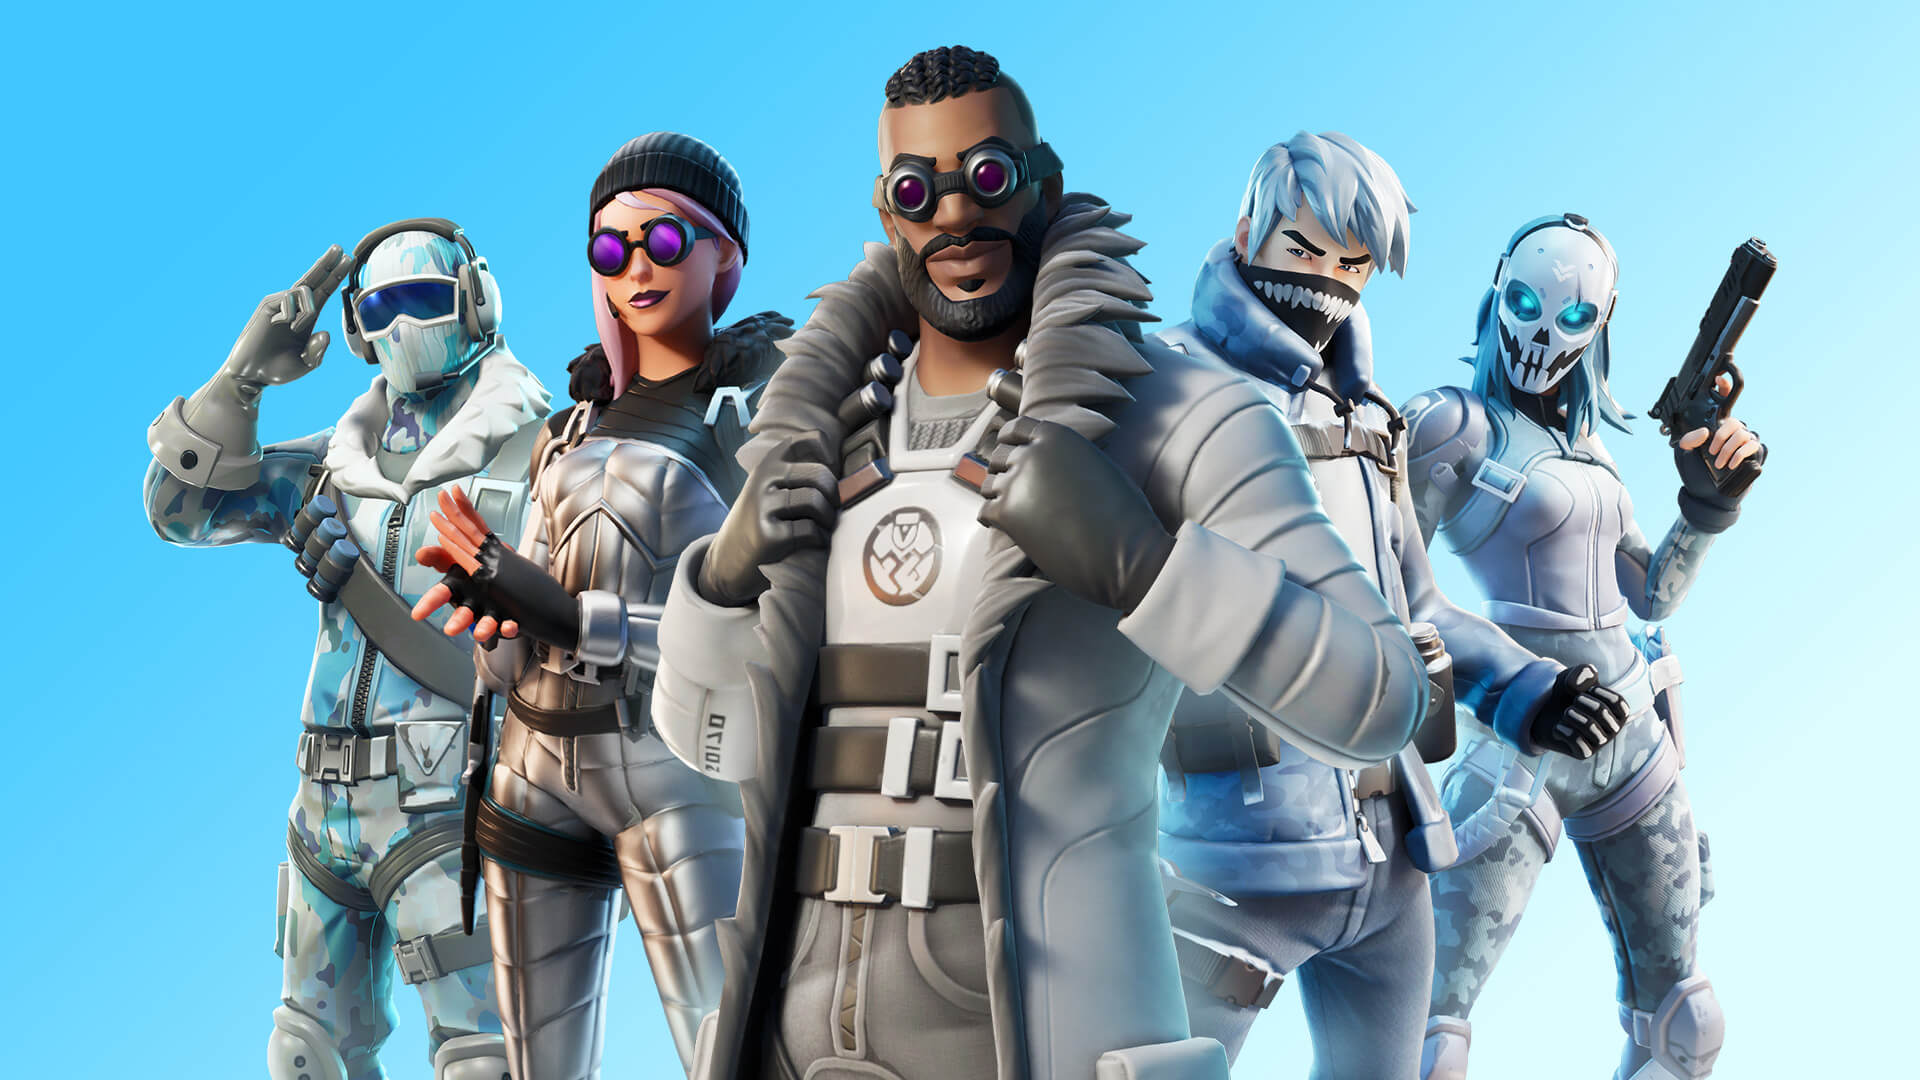 Creative Games In Fortnite The Best Fortnite Creative Map Codes For The Week Of March 23 2021